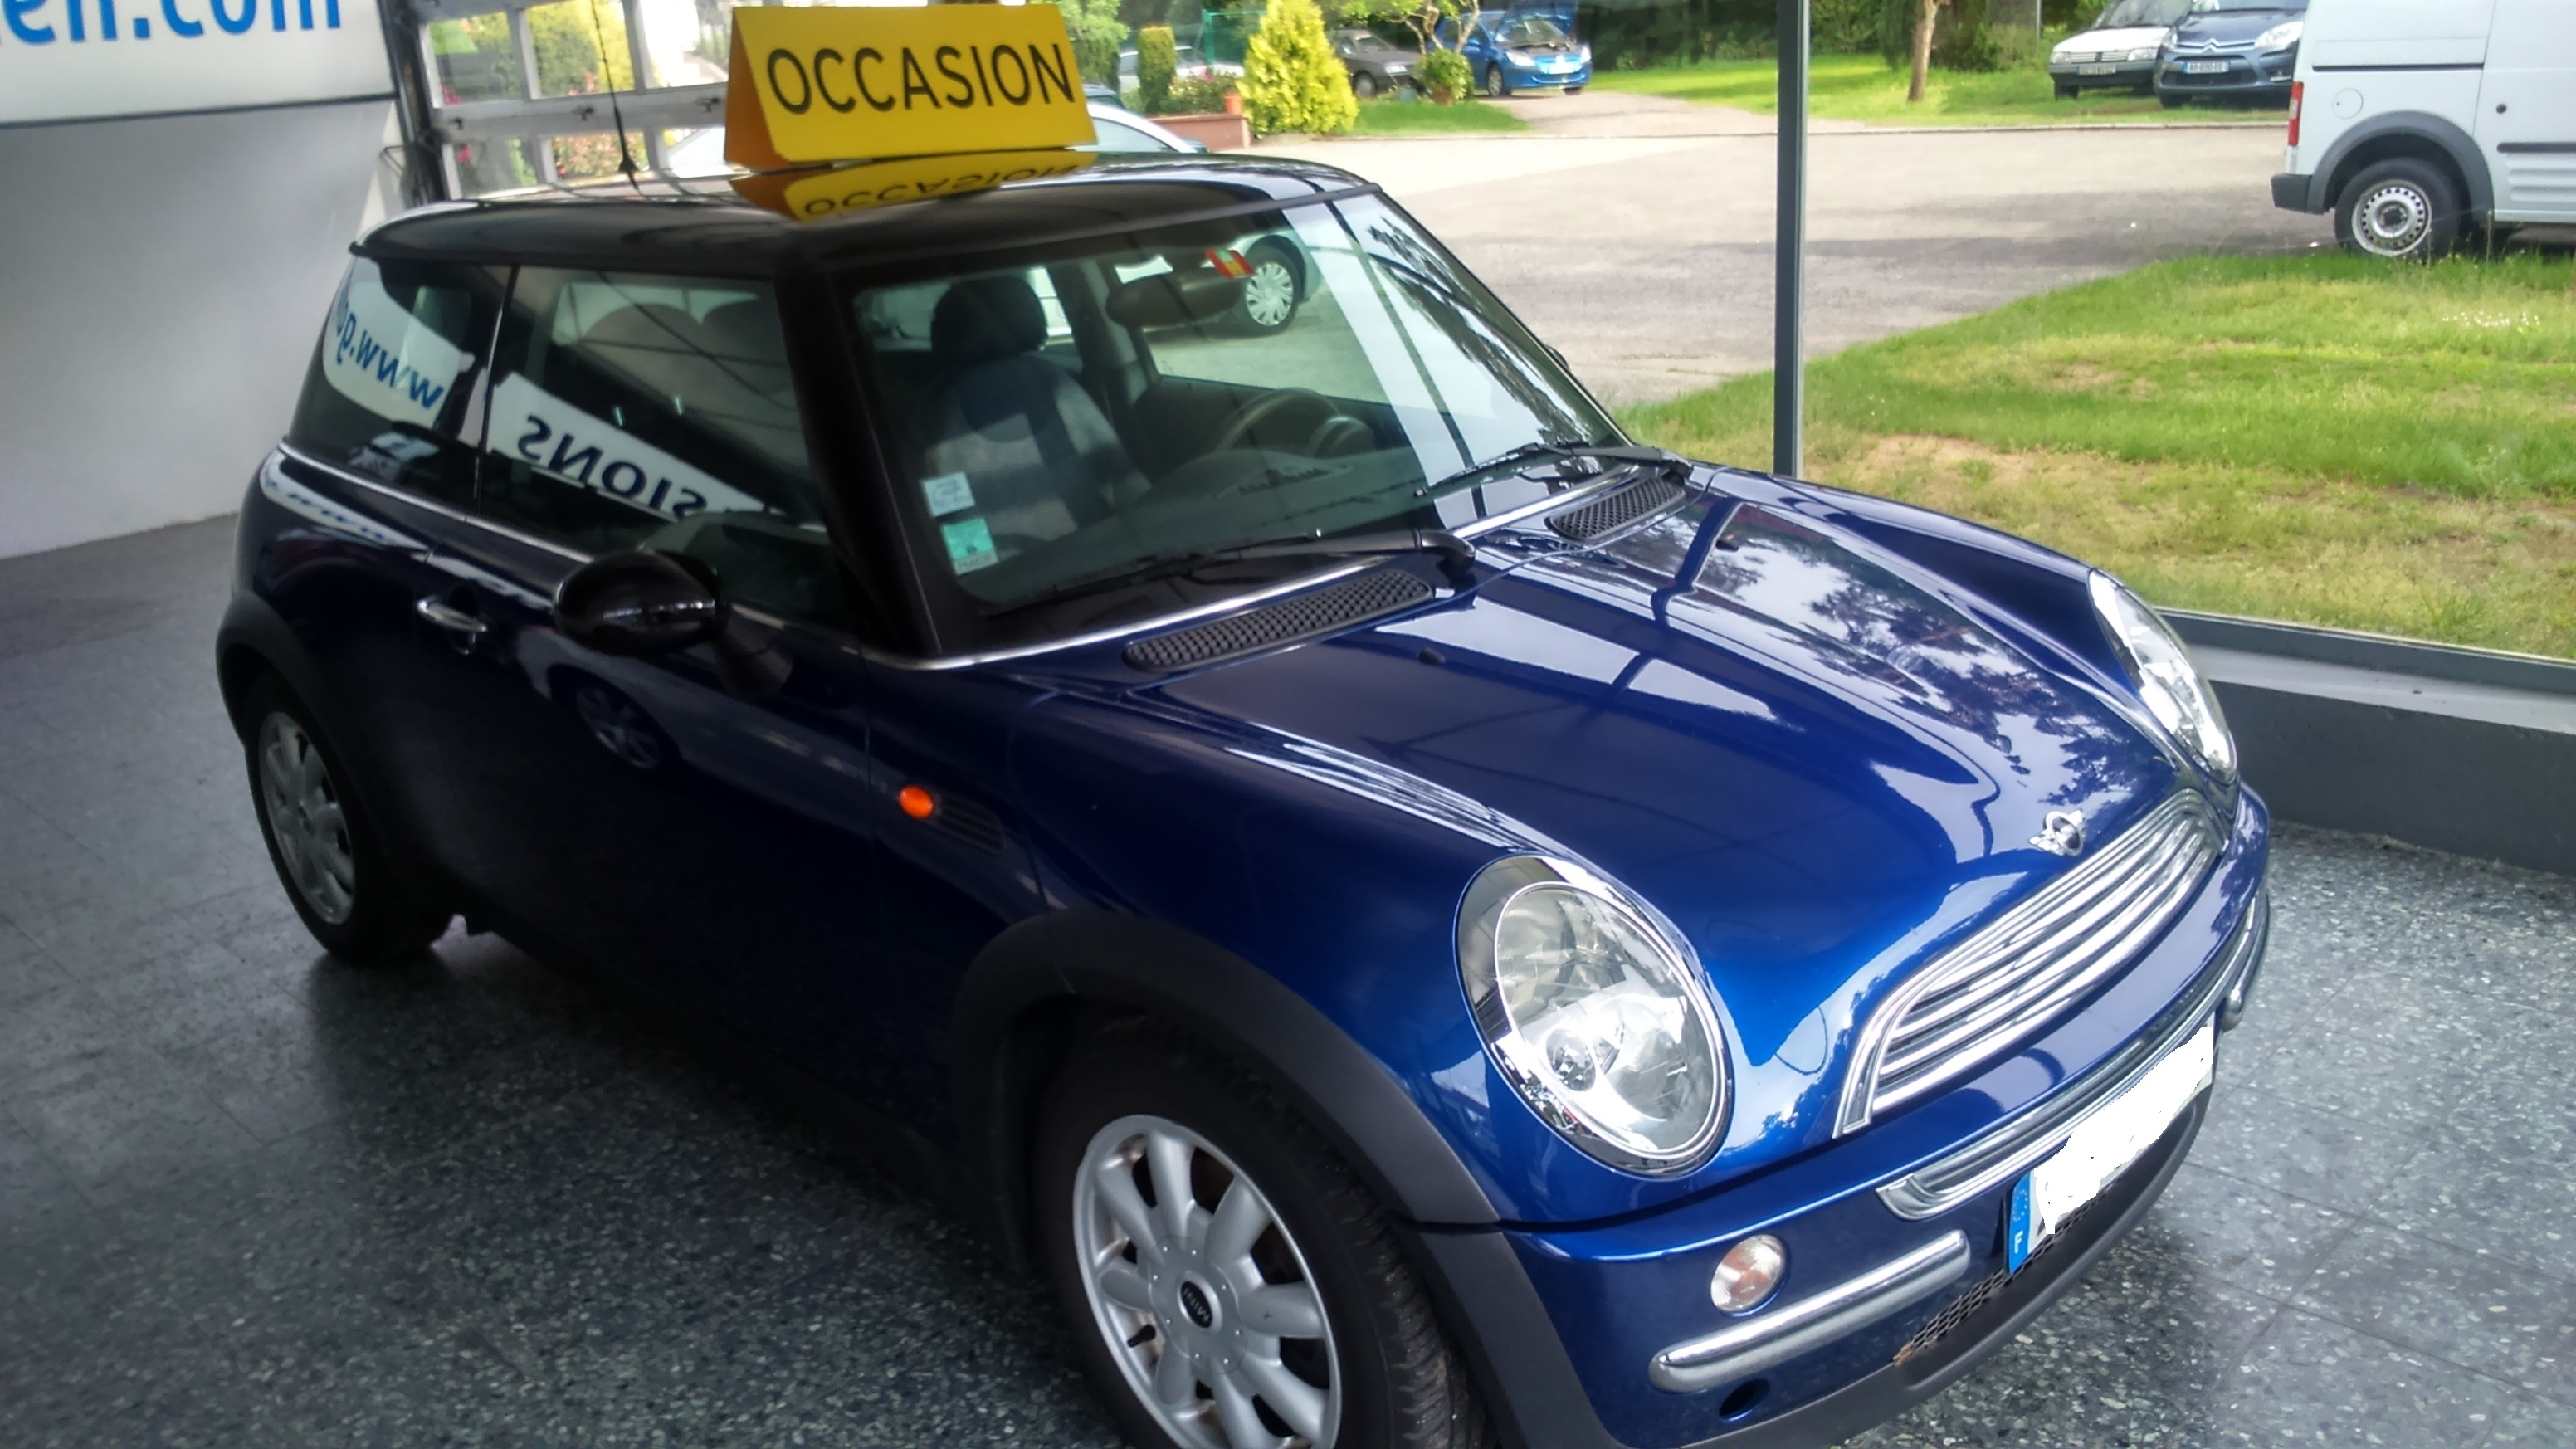 Occasion arrivage mini cooper garage carlen for Garage mini cooper annemasse